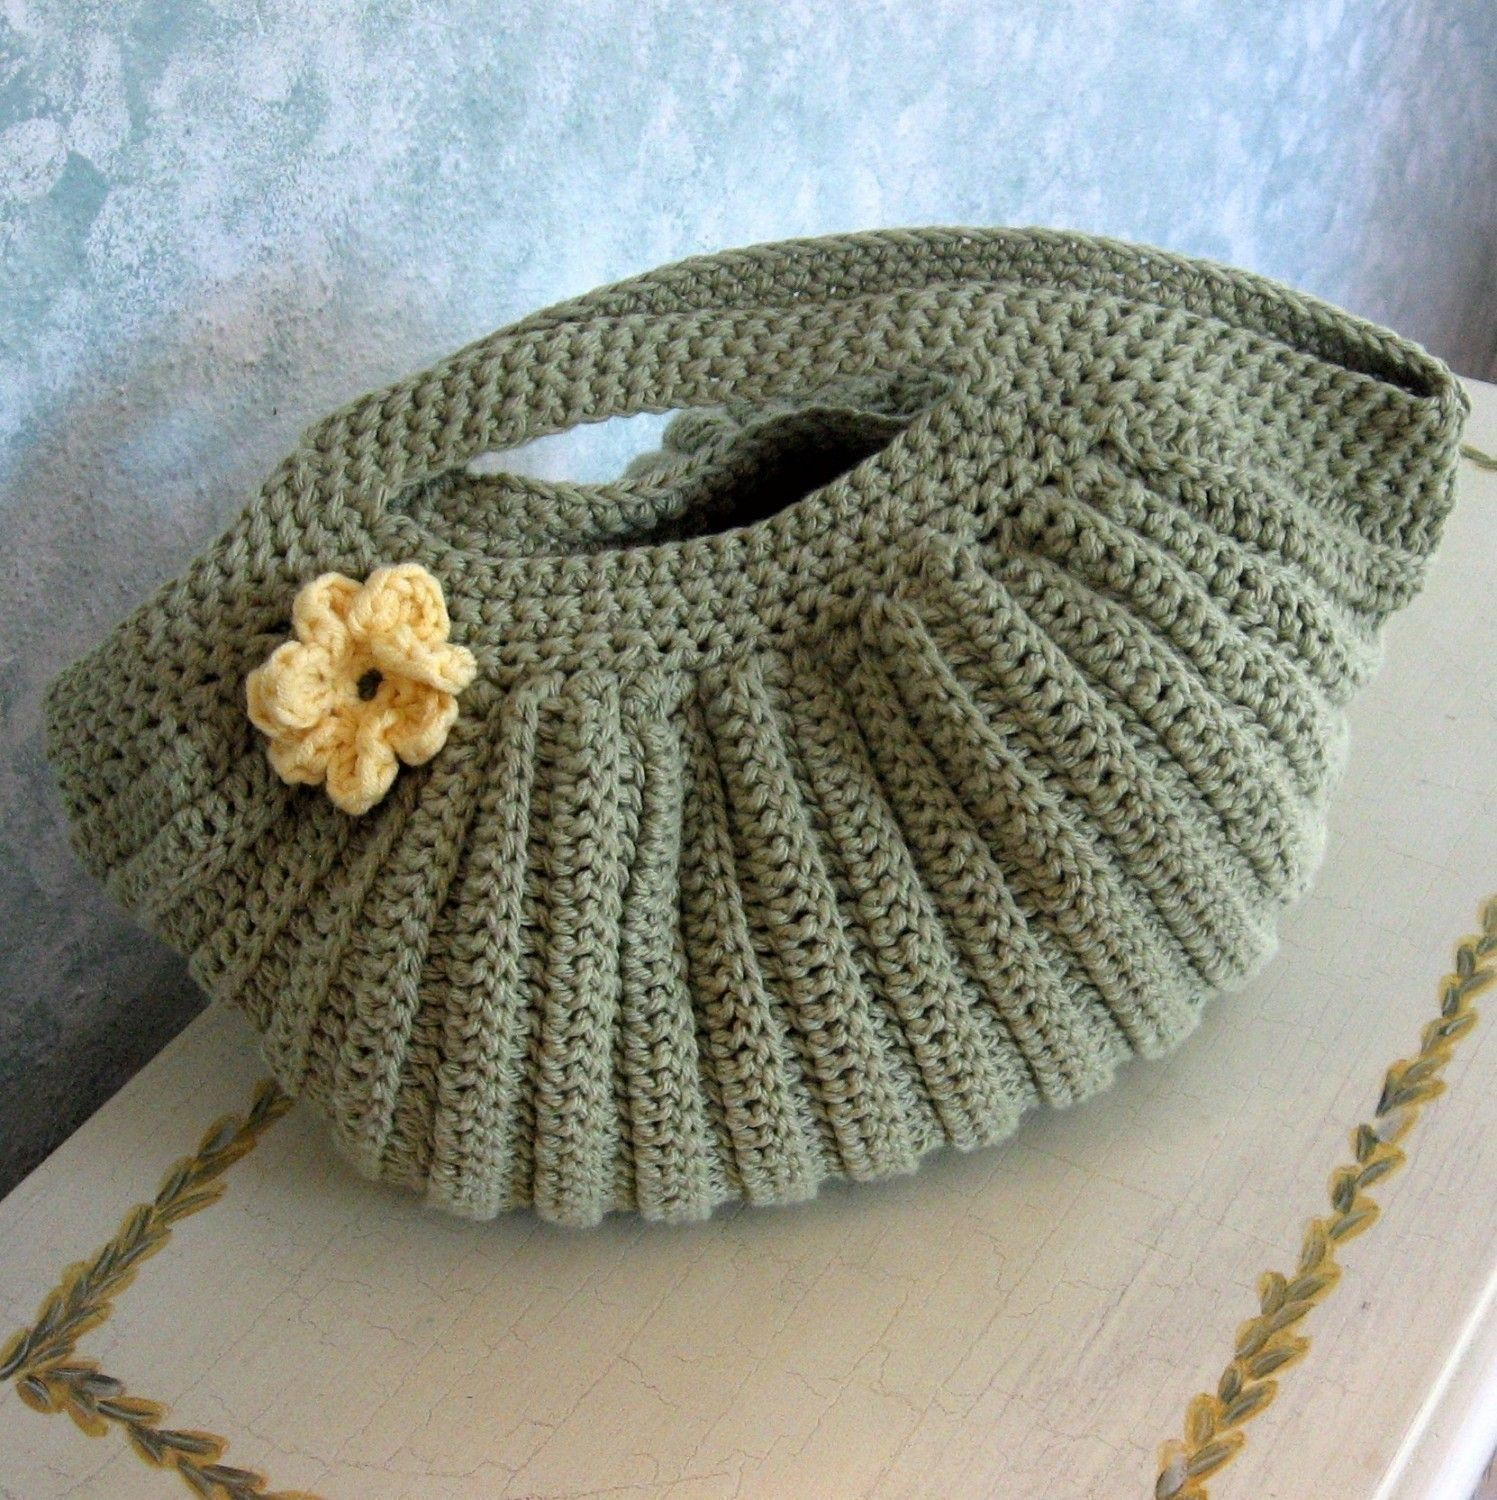 Crochet purse pattern pleated clam shell shape with flower trim crochet purse pattern pleated clam shell shape with flower trim pdf easy to make resell finished bankloansurffo Image collections